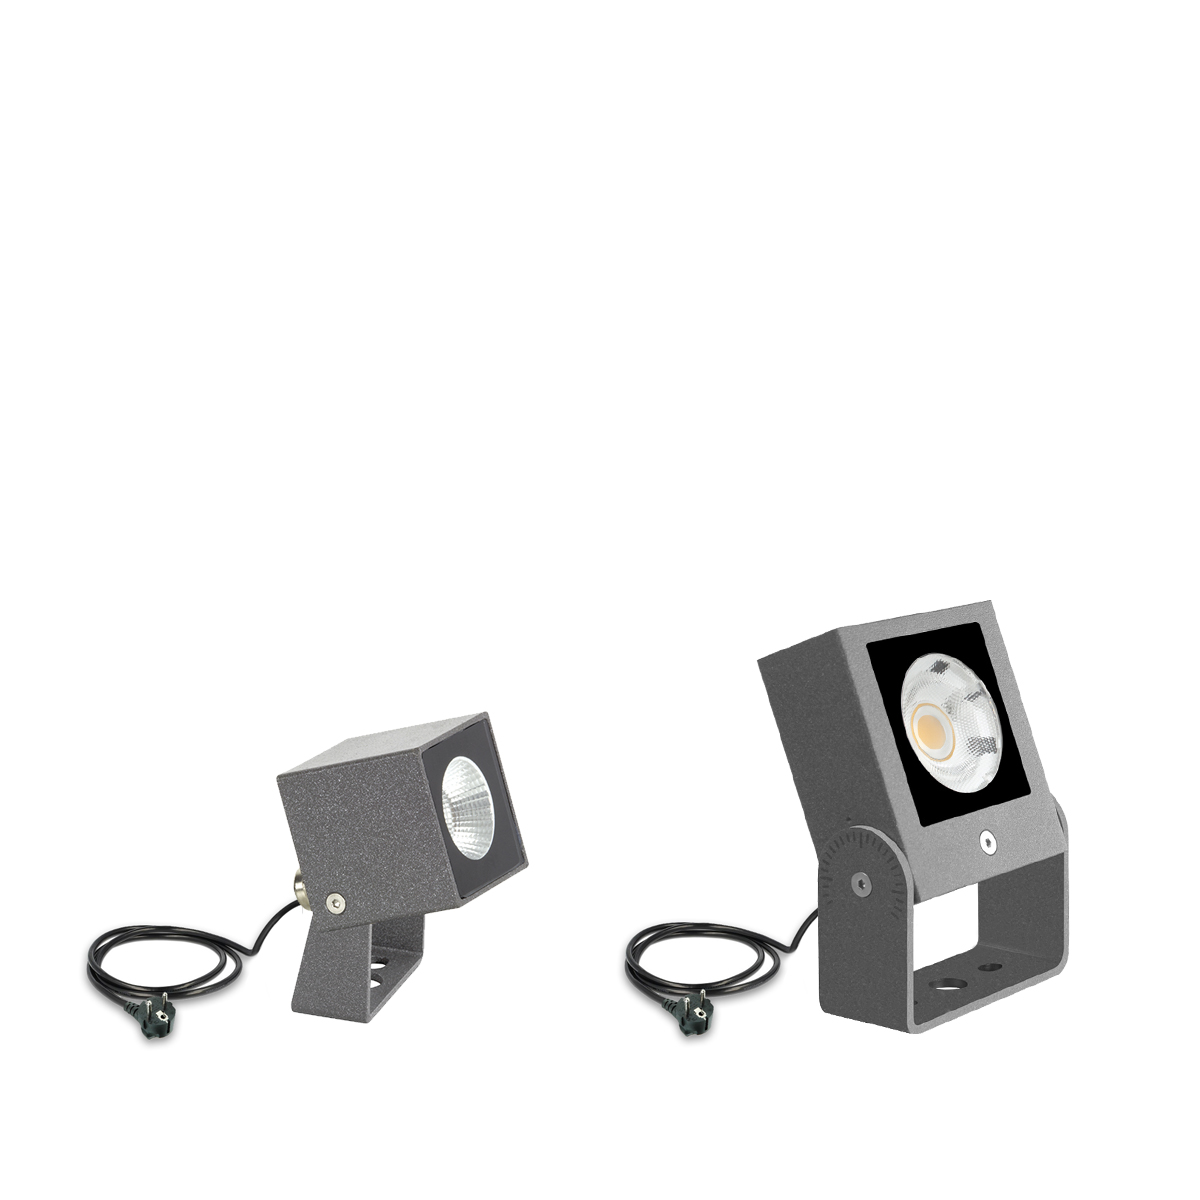 Spot Lights Plug & Play